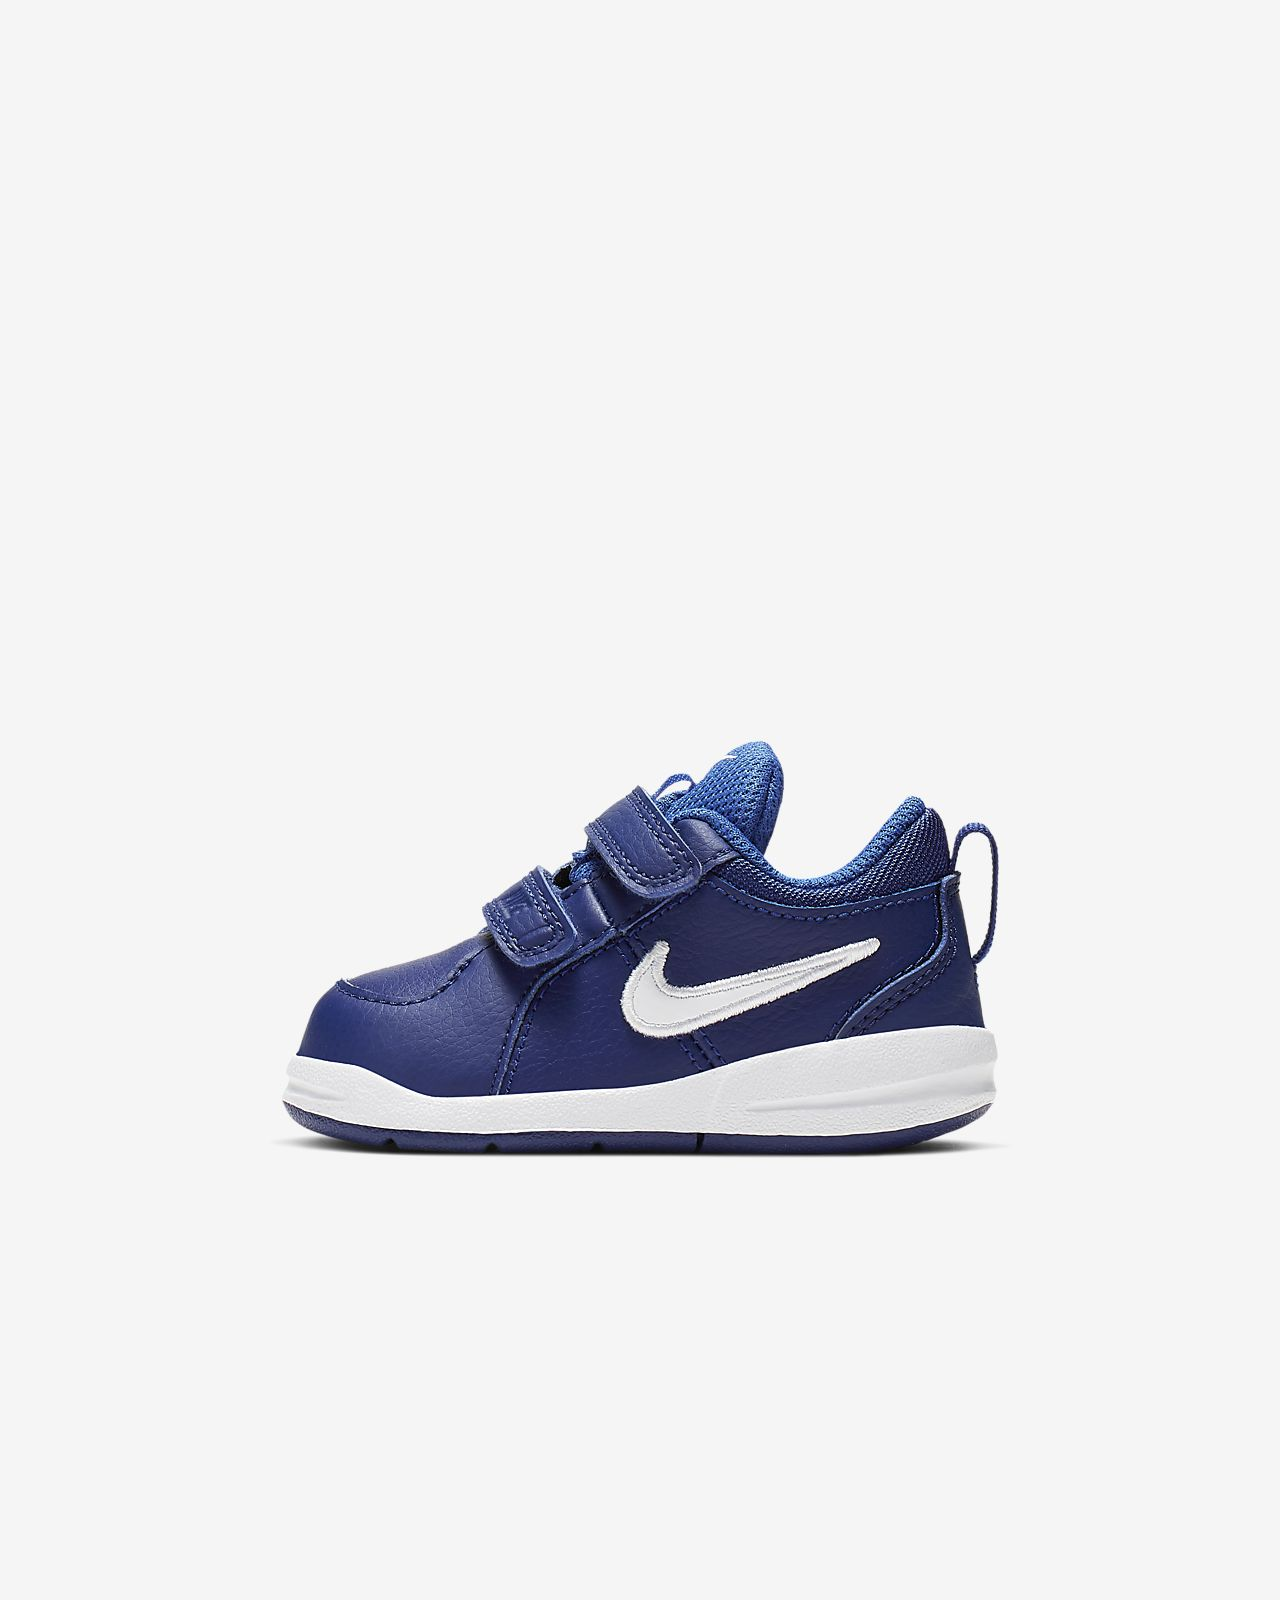 brand new 2eef1 aa323 ... Nike Pico 4 Baby   Toddler Shoe